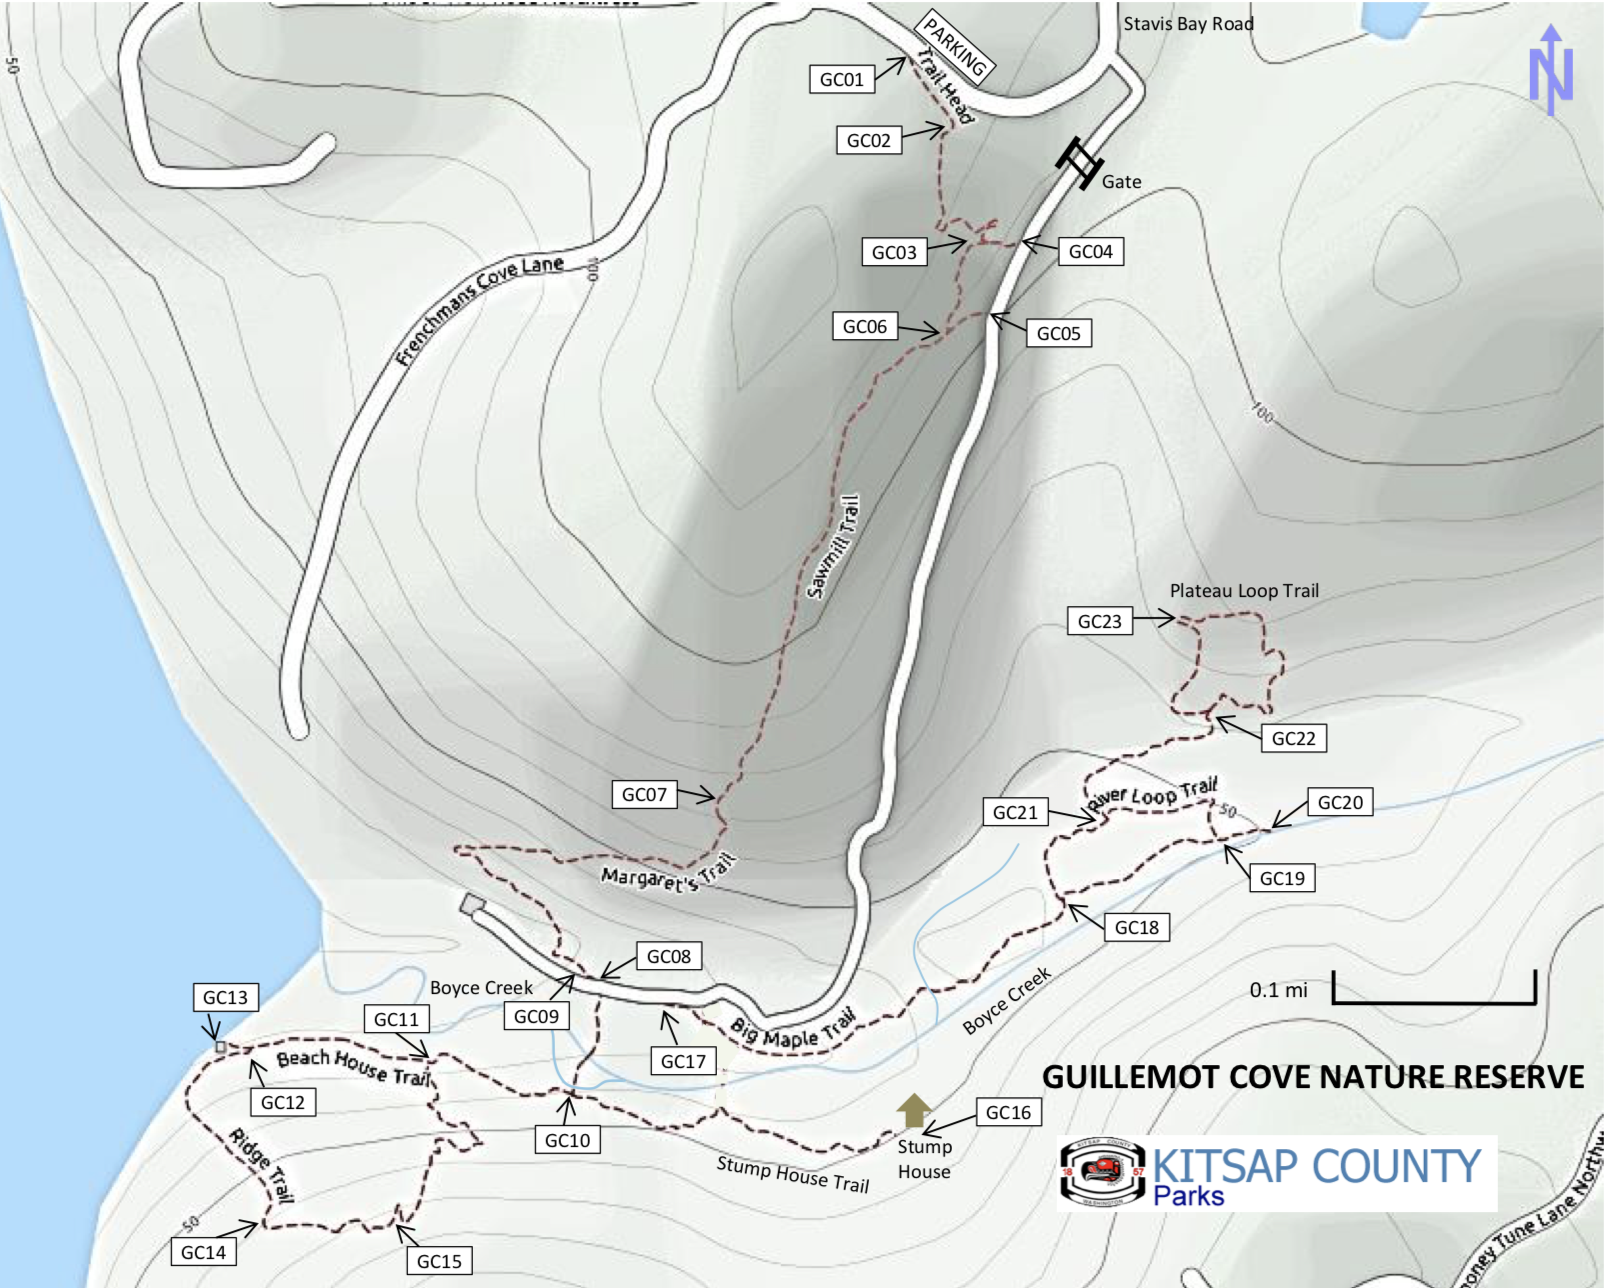 The Guillemot Cove Reserve is managed by Kitsap County Parks |  Download map and trail guide